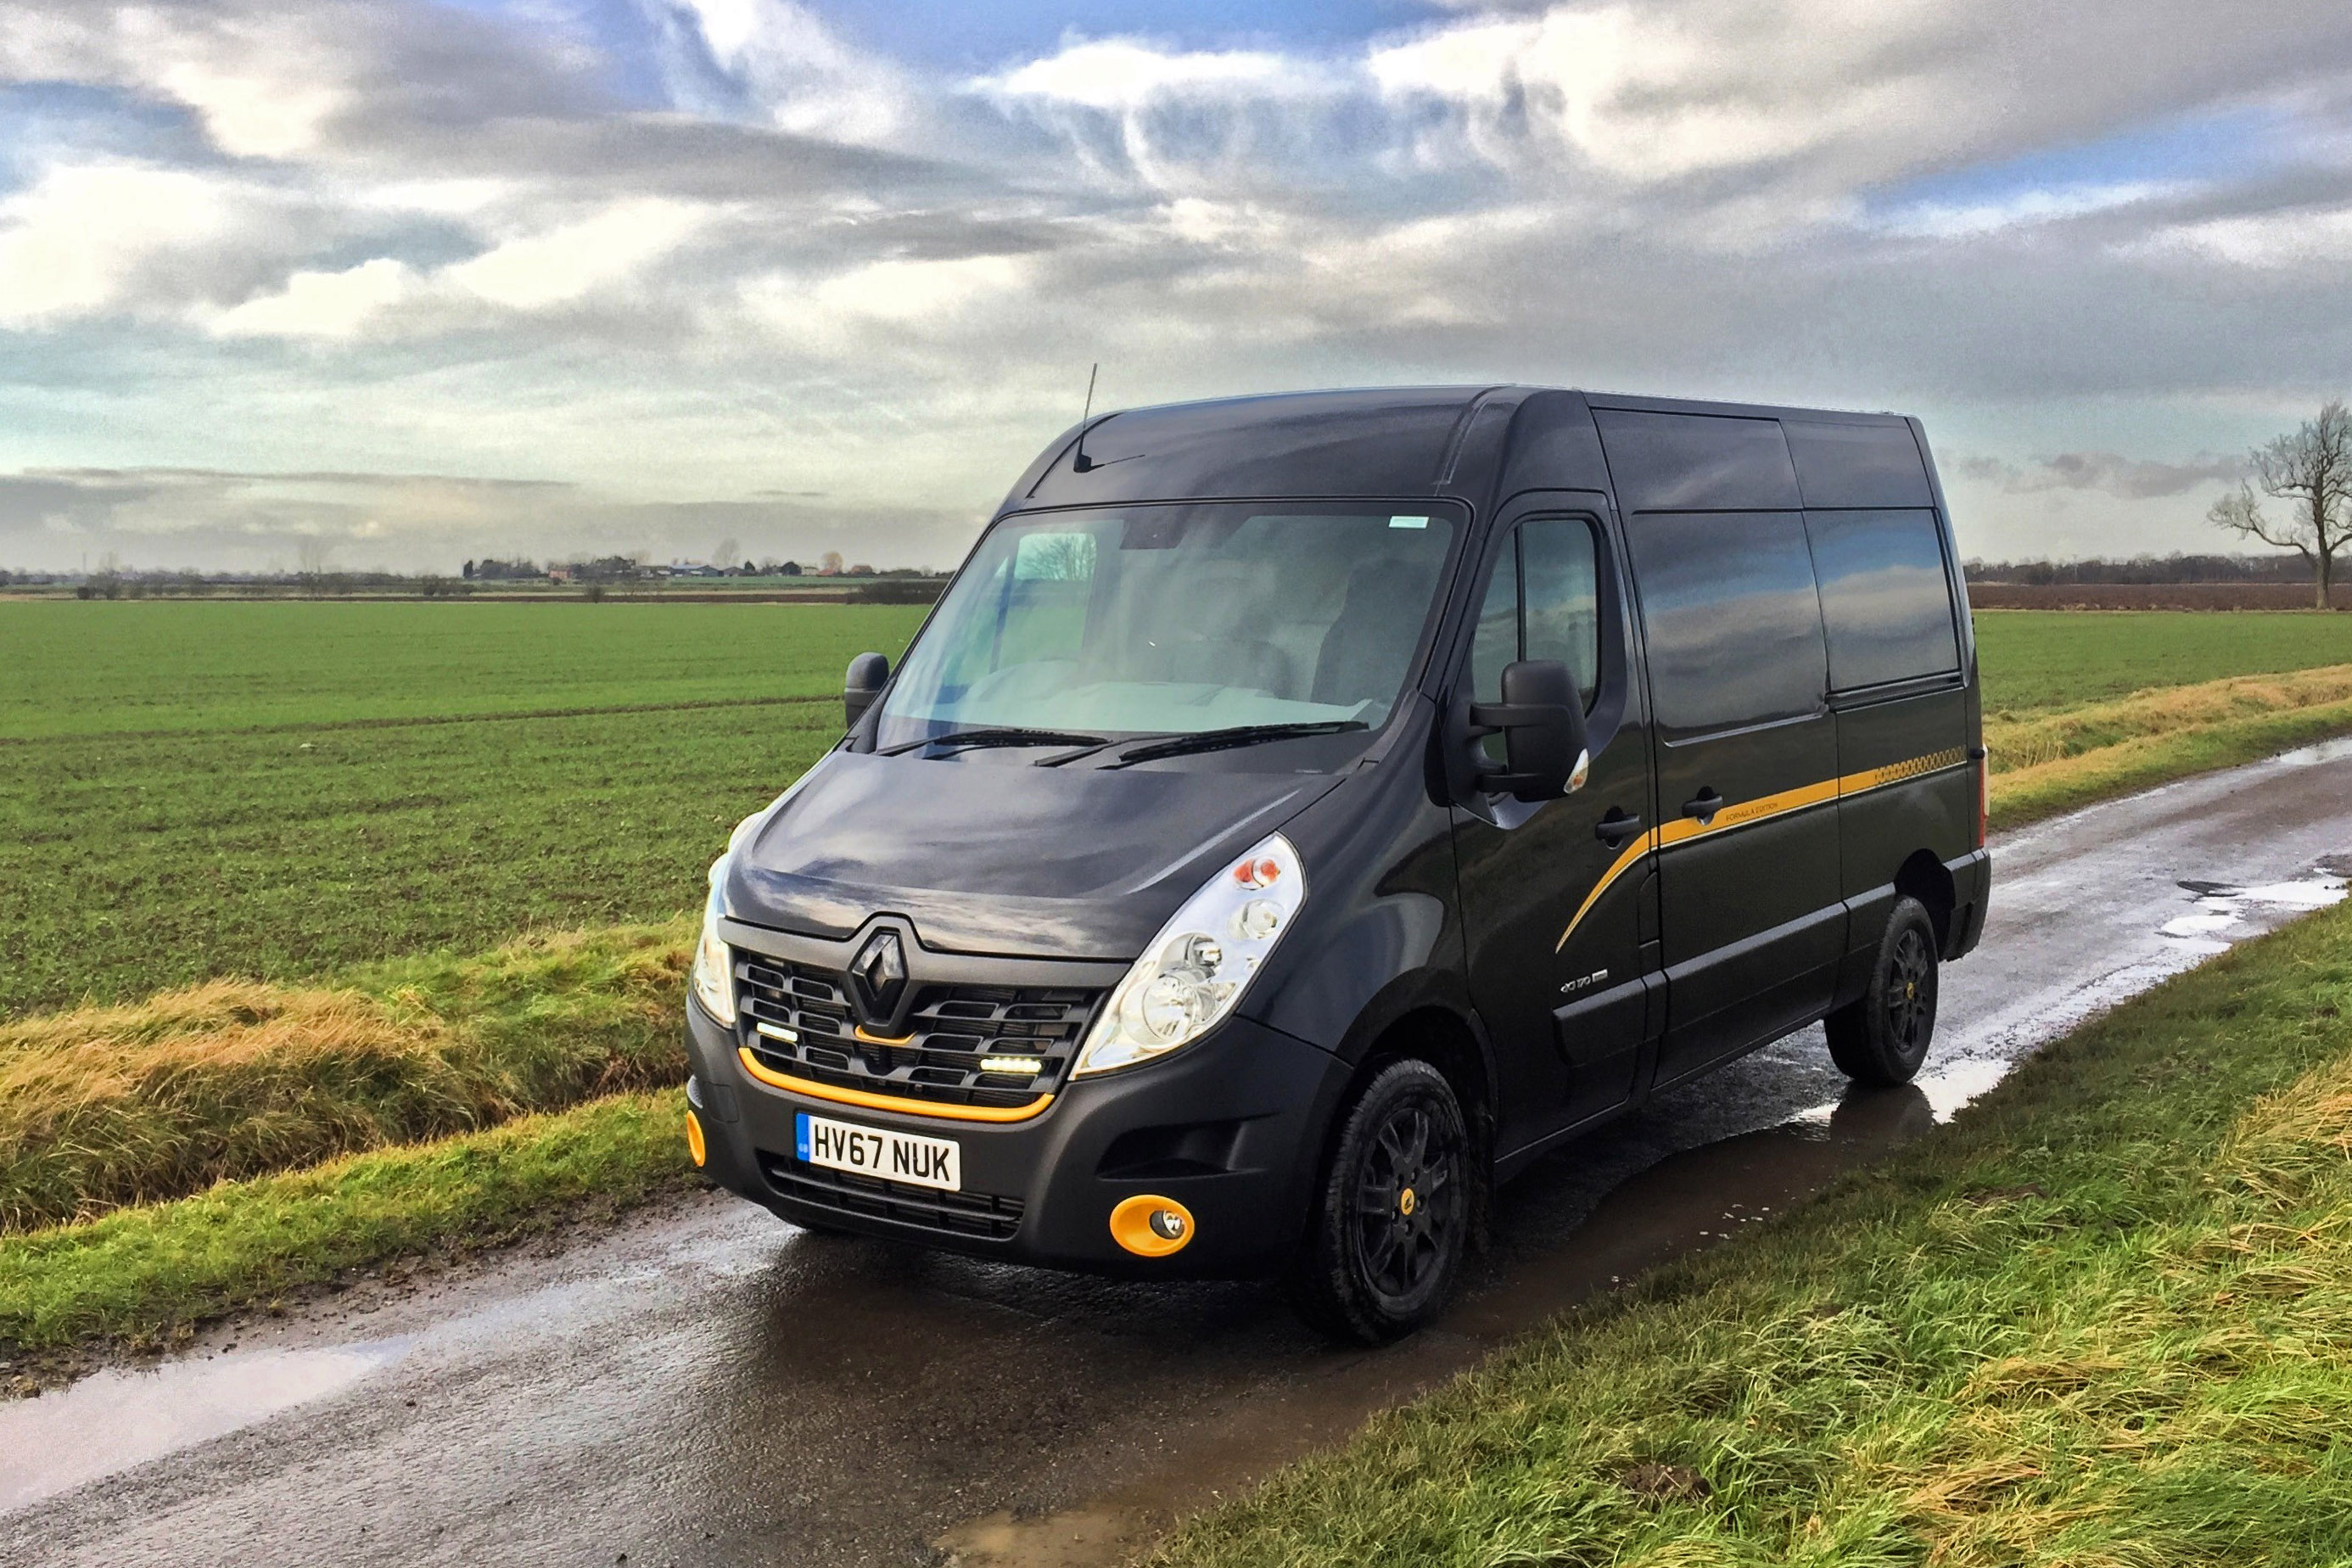 renault master mwb 2 3 dci 170ps mm35 energy formula edition medium rf van fwd road test parkers. Black Bedroom Furniture Sets. Home Design Ideas